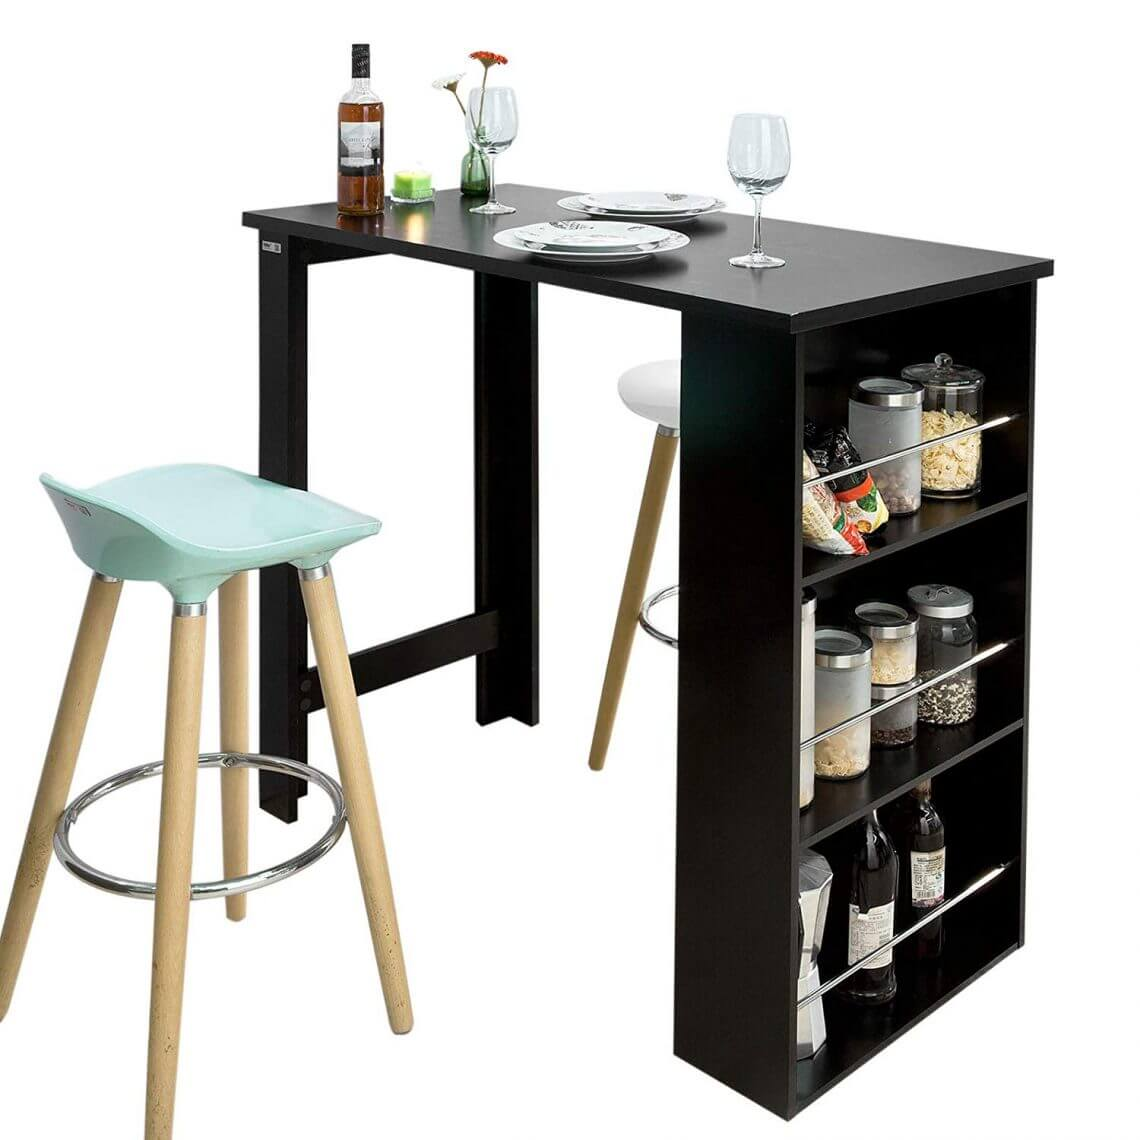 Les 8 Plus Belles Tables Bar Guide Shopping Avec Suite101